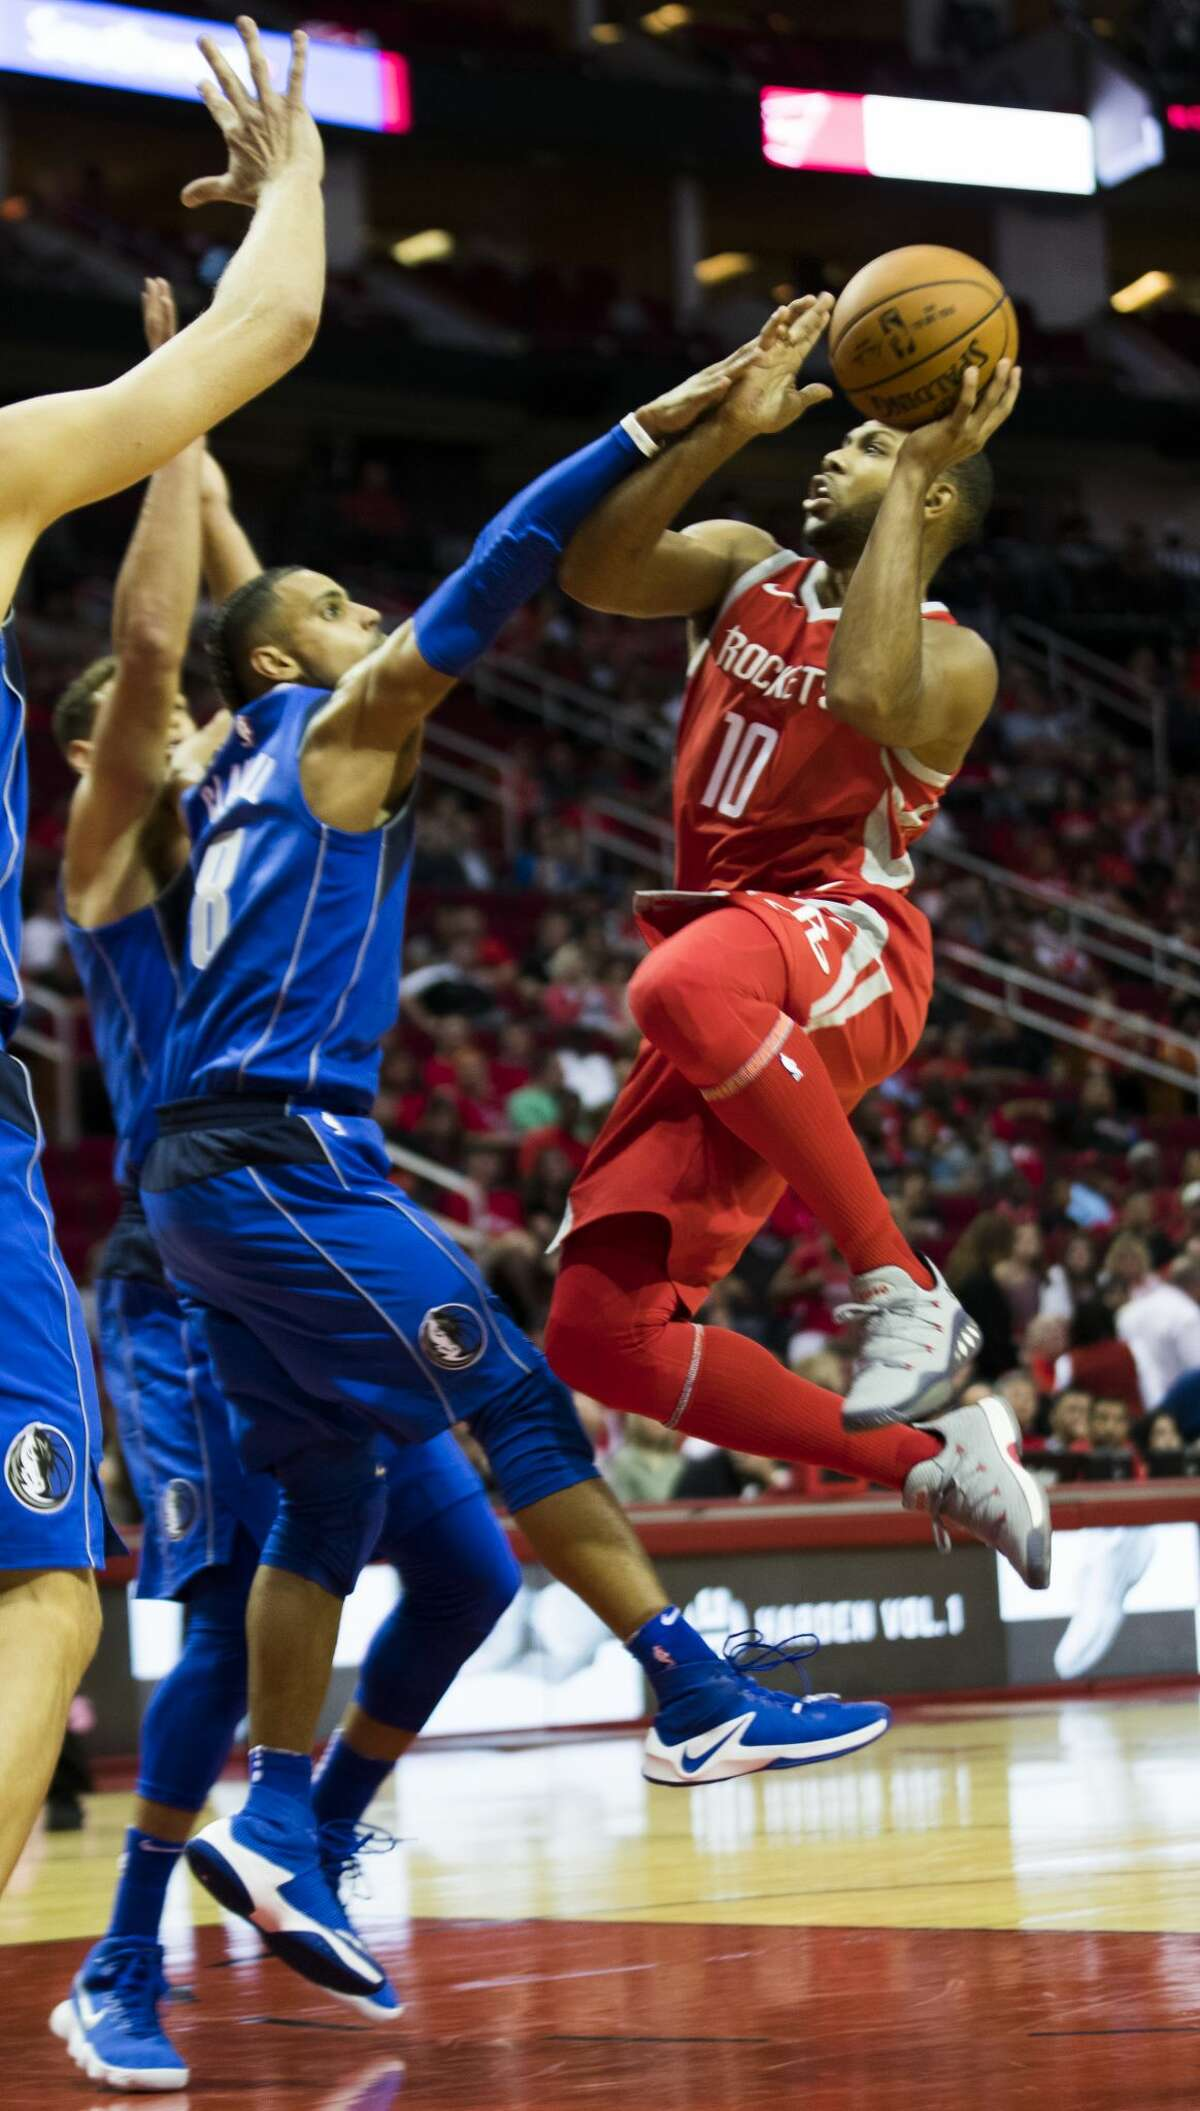 Houston Rockets guard Eric Gordon (10) flies toward the basket scoring against the Dallas Mavericks during the second quarter, Saturday, Oct. 21, 2017, at the Toyota Center in Houston. ( Marie D. De Jesus / Houston Chronicle )